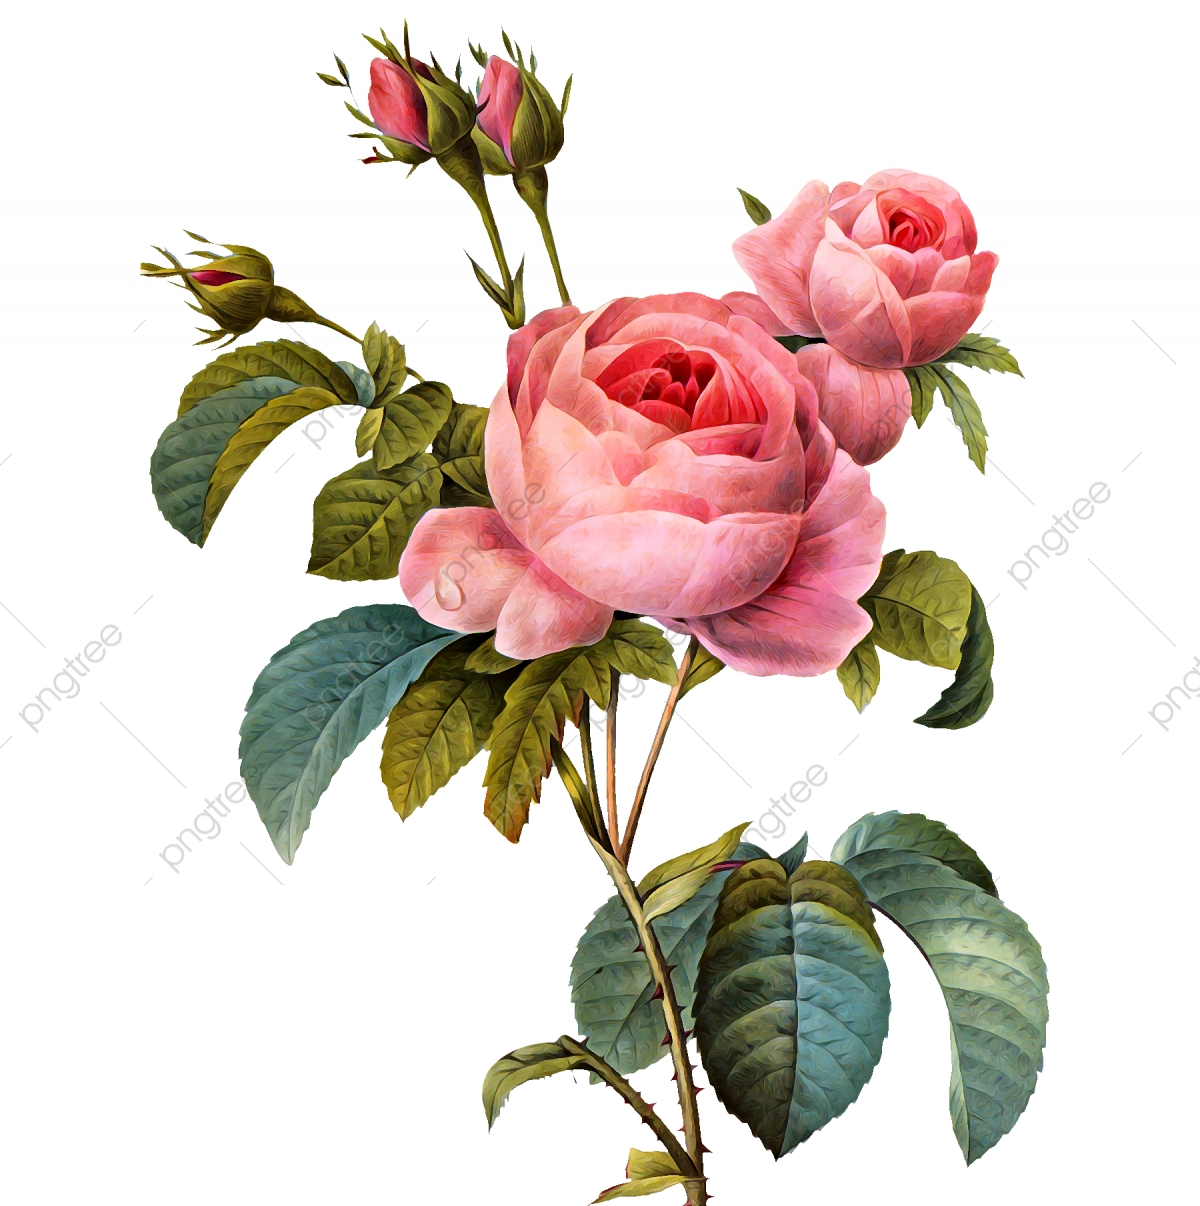 Vintage Flower, Clipart, Rose Flower PNG Transparent Clipart.